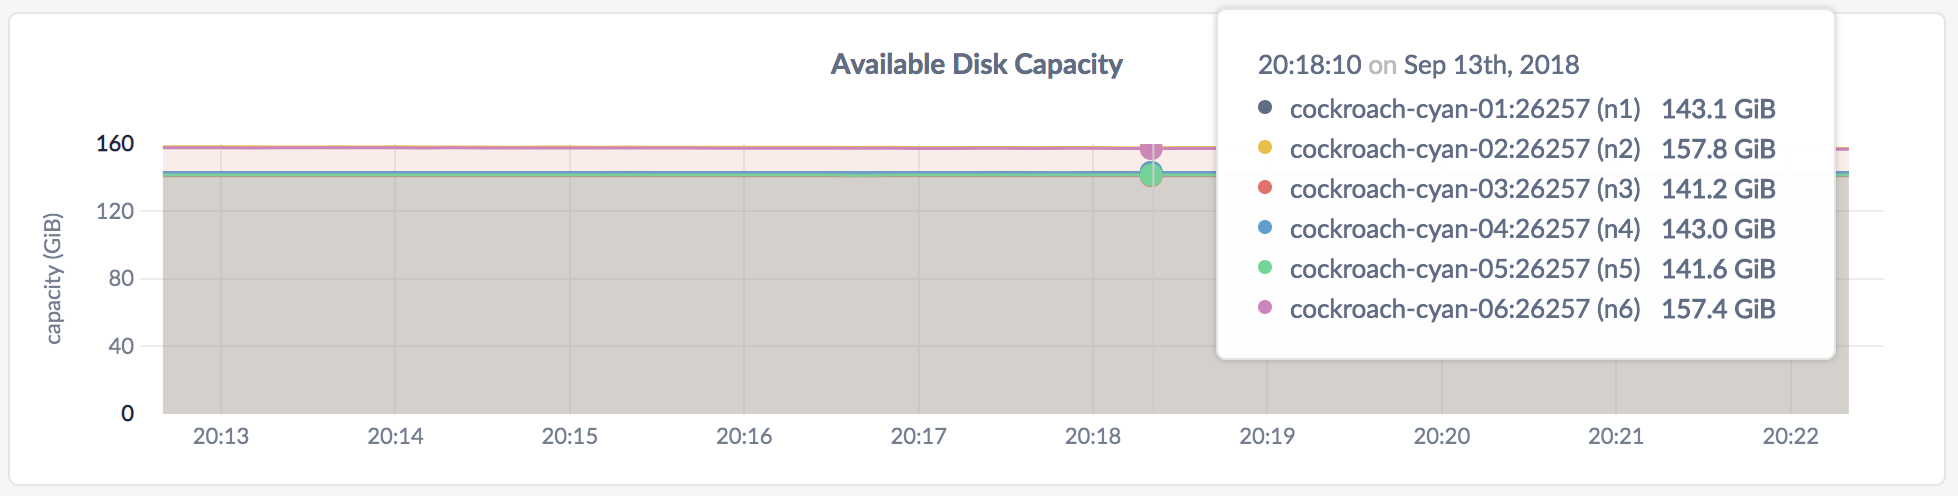 DB Console Disk Capacity graph